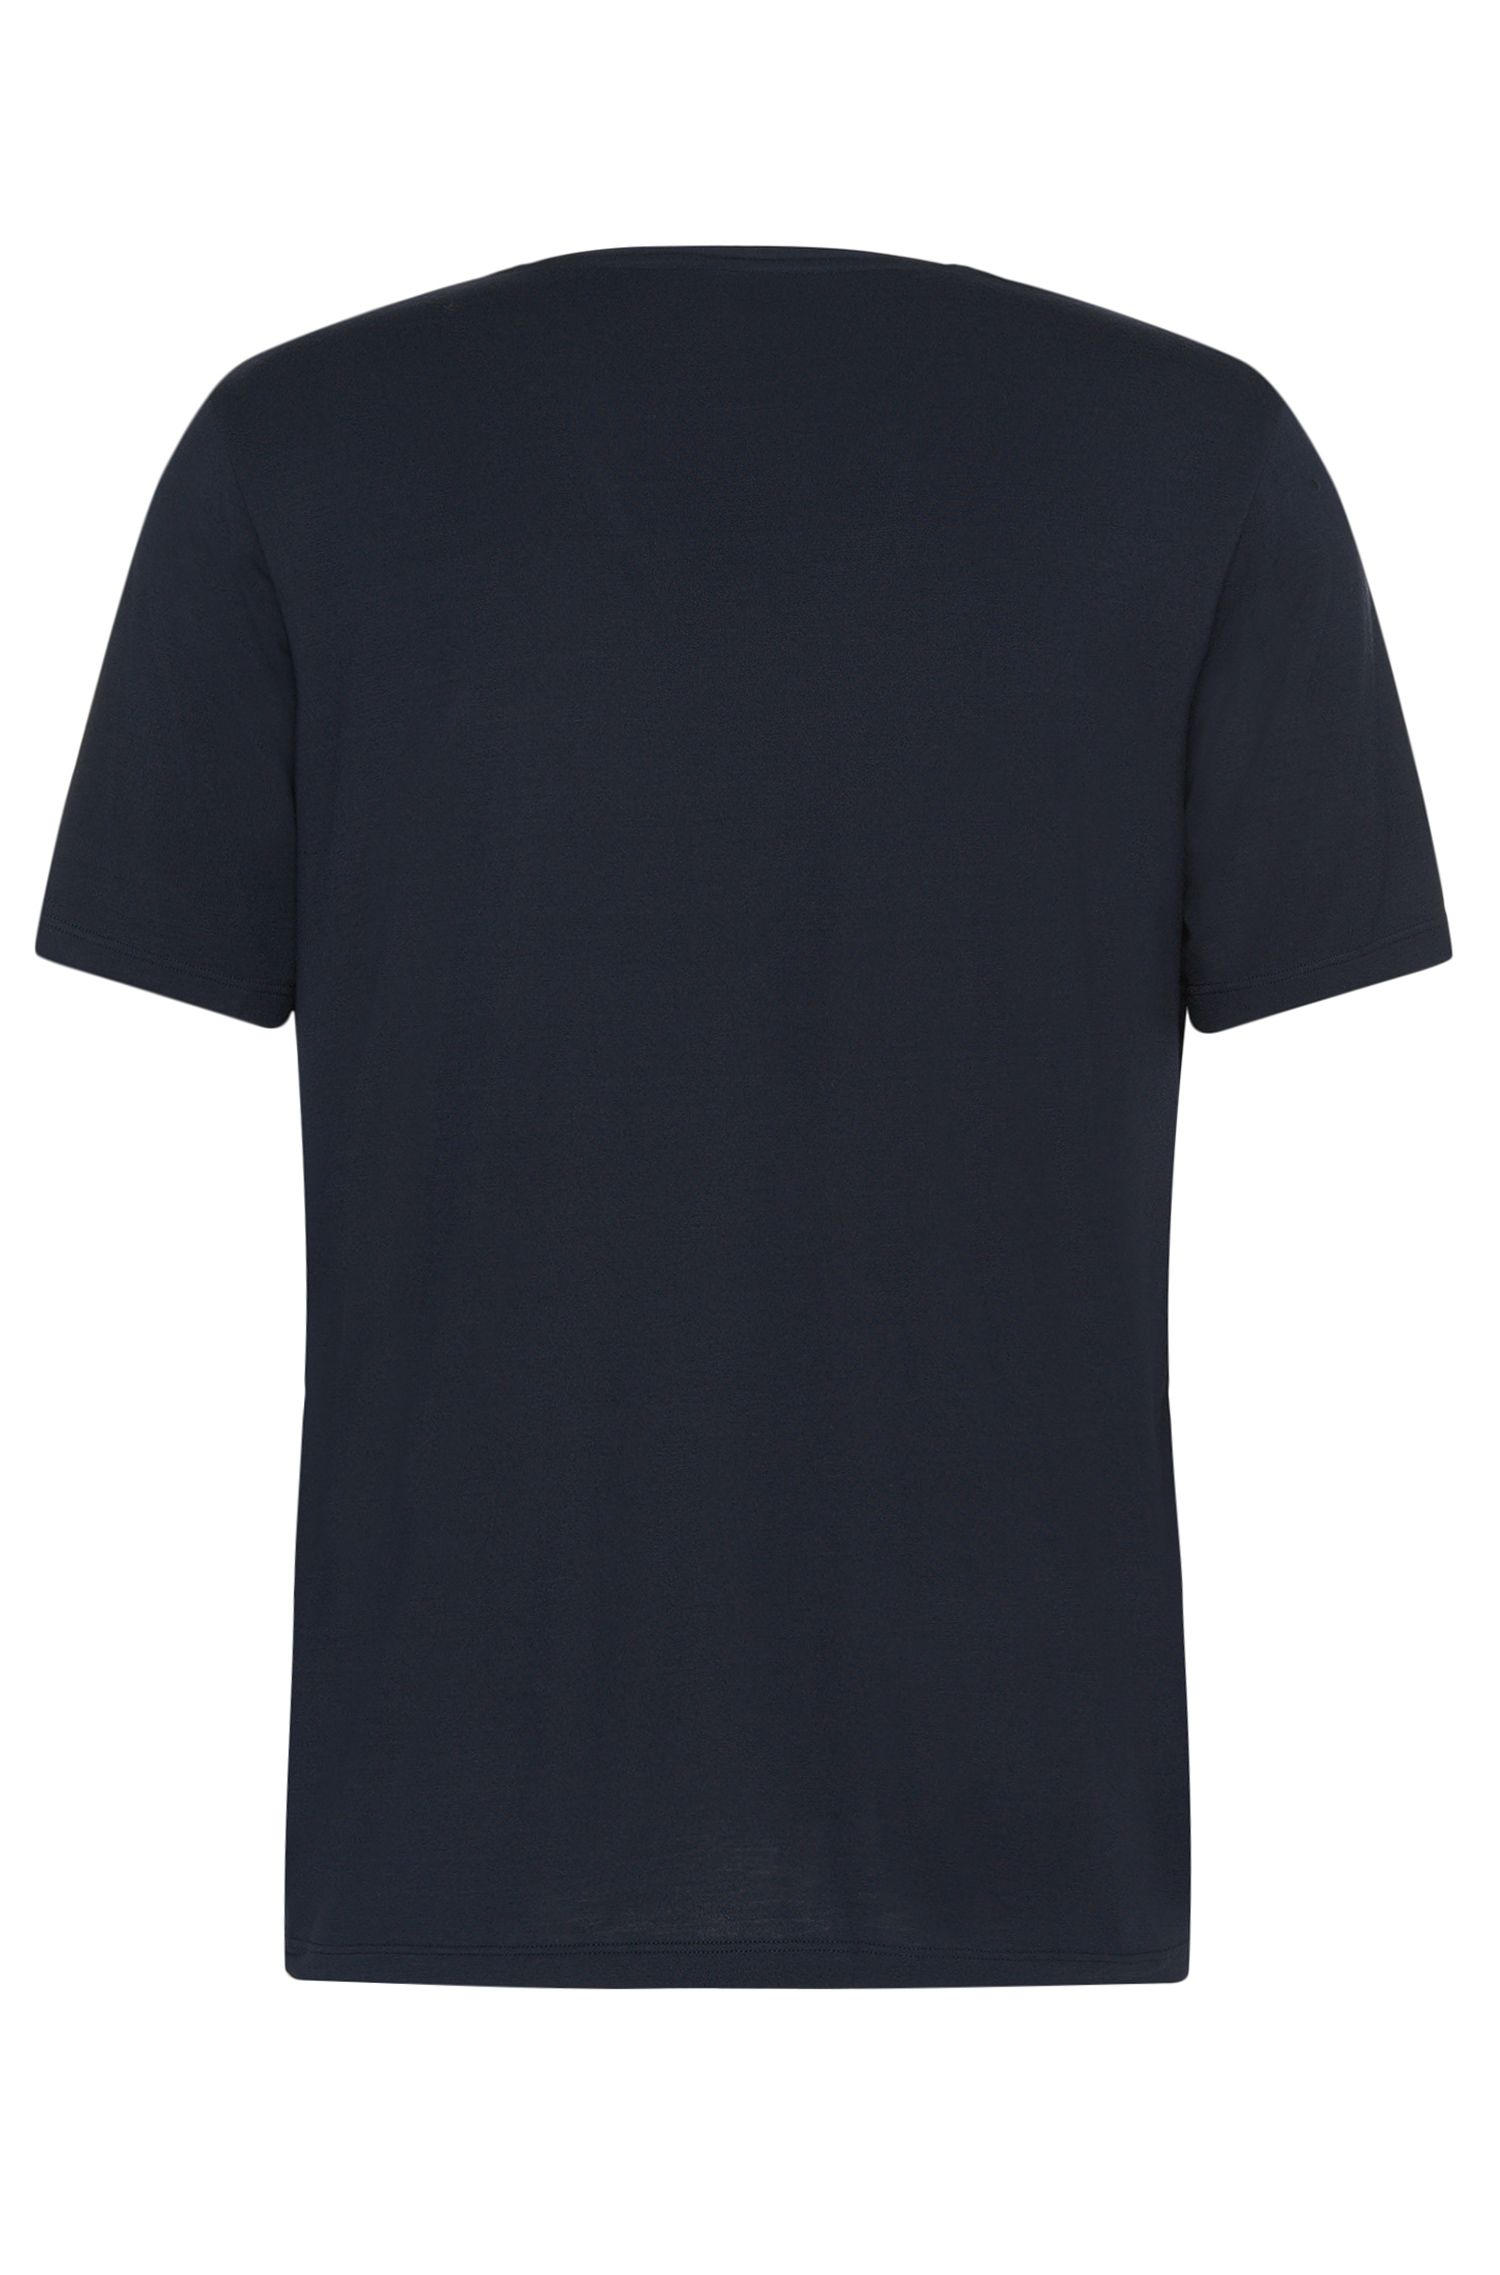 T-shirt regular fit in modal elasticizzato: 'Shirt VN'